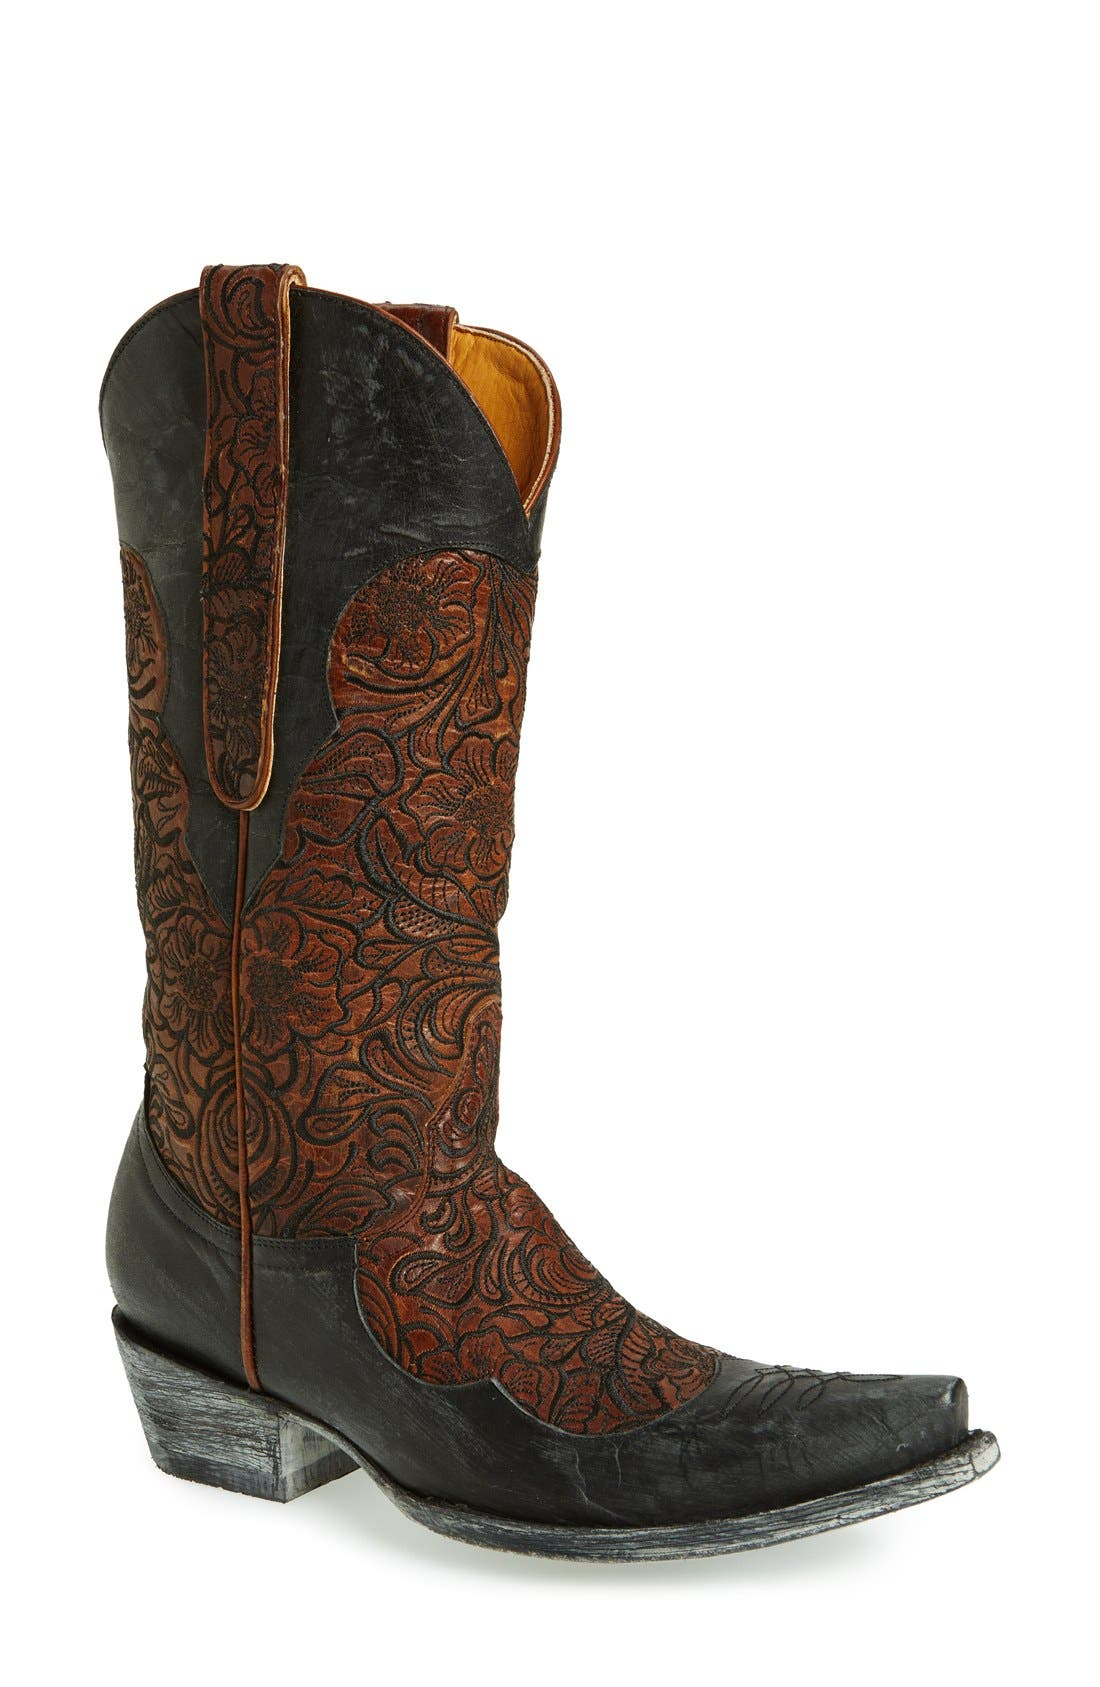 Alternate Image 1 Selected - Old Gringo 'Feita' Floral Embroidered Leather Boot (Women)